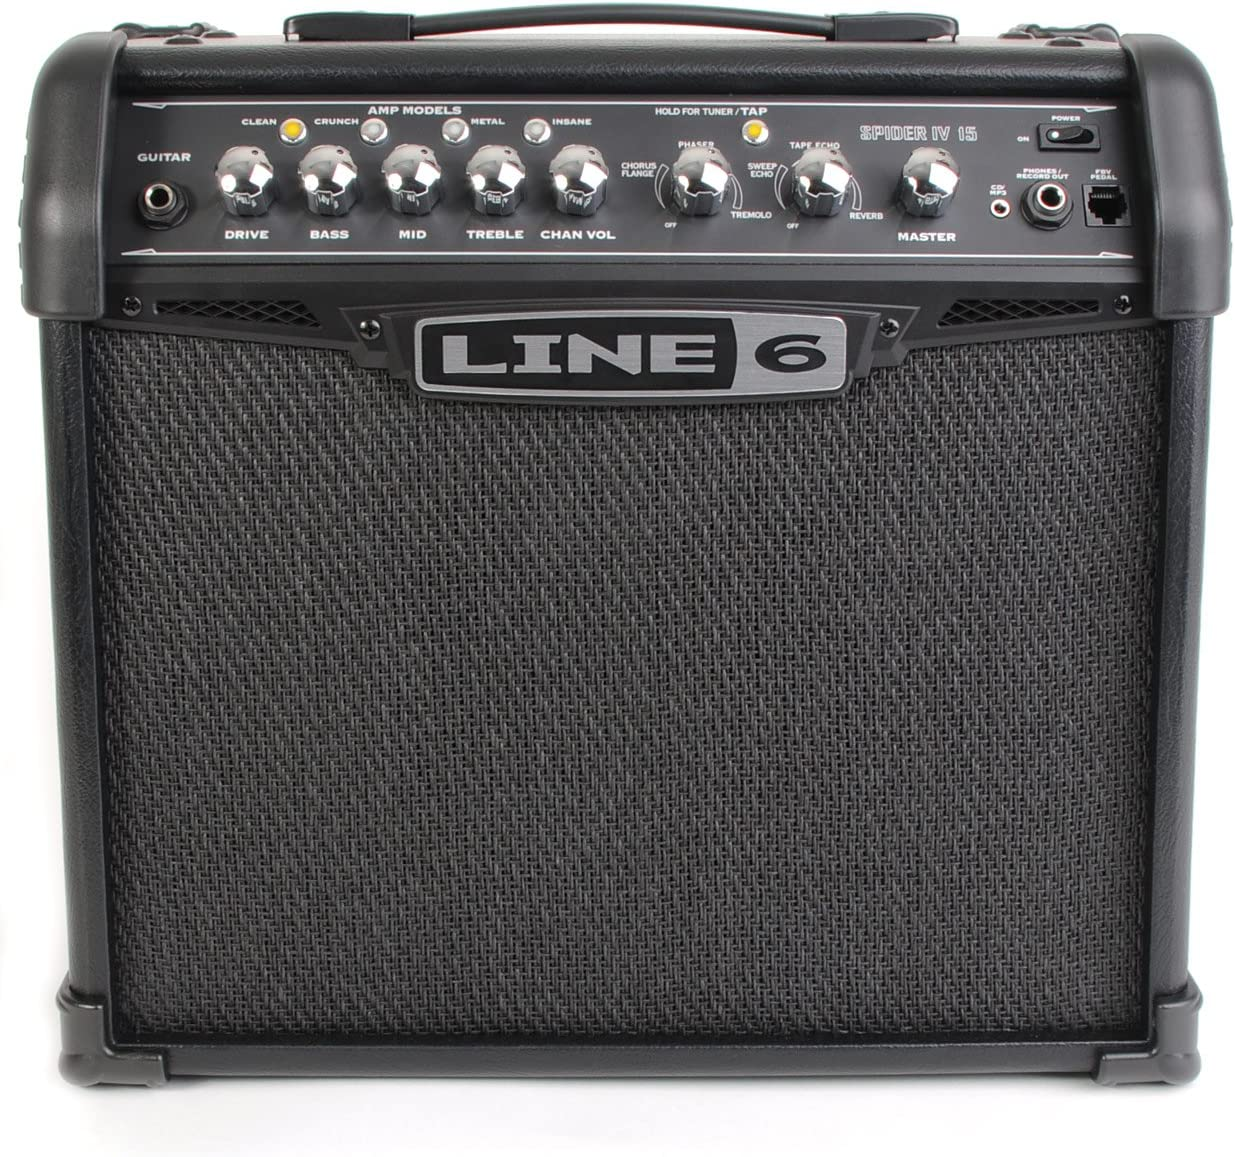 Line 6 Spider IV 15 - Amplificador para guitarra (15W, 8, CD/MP3 ...